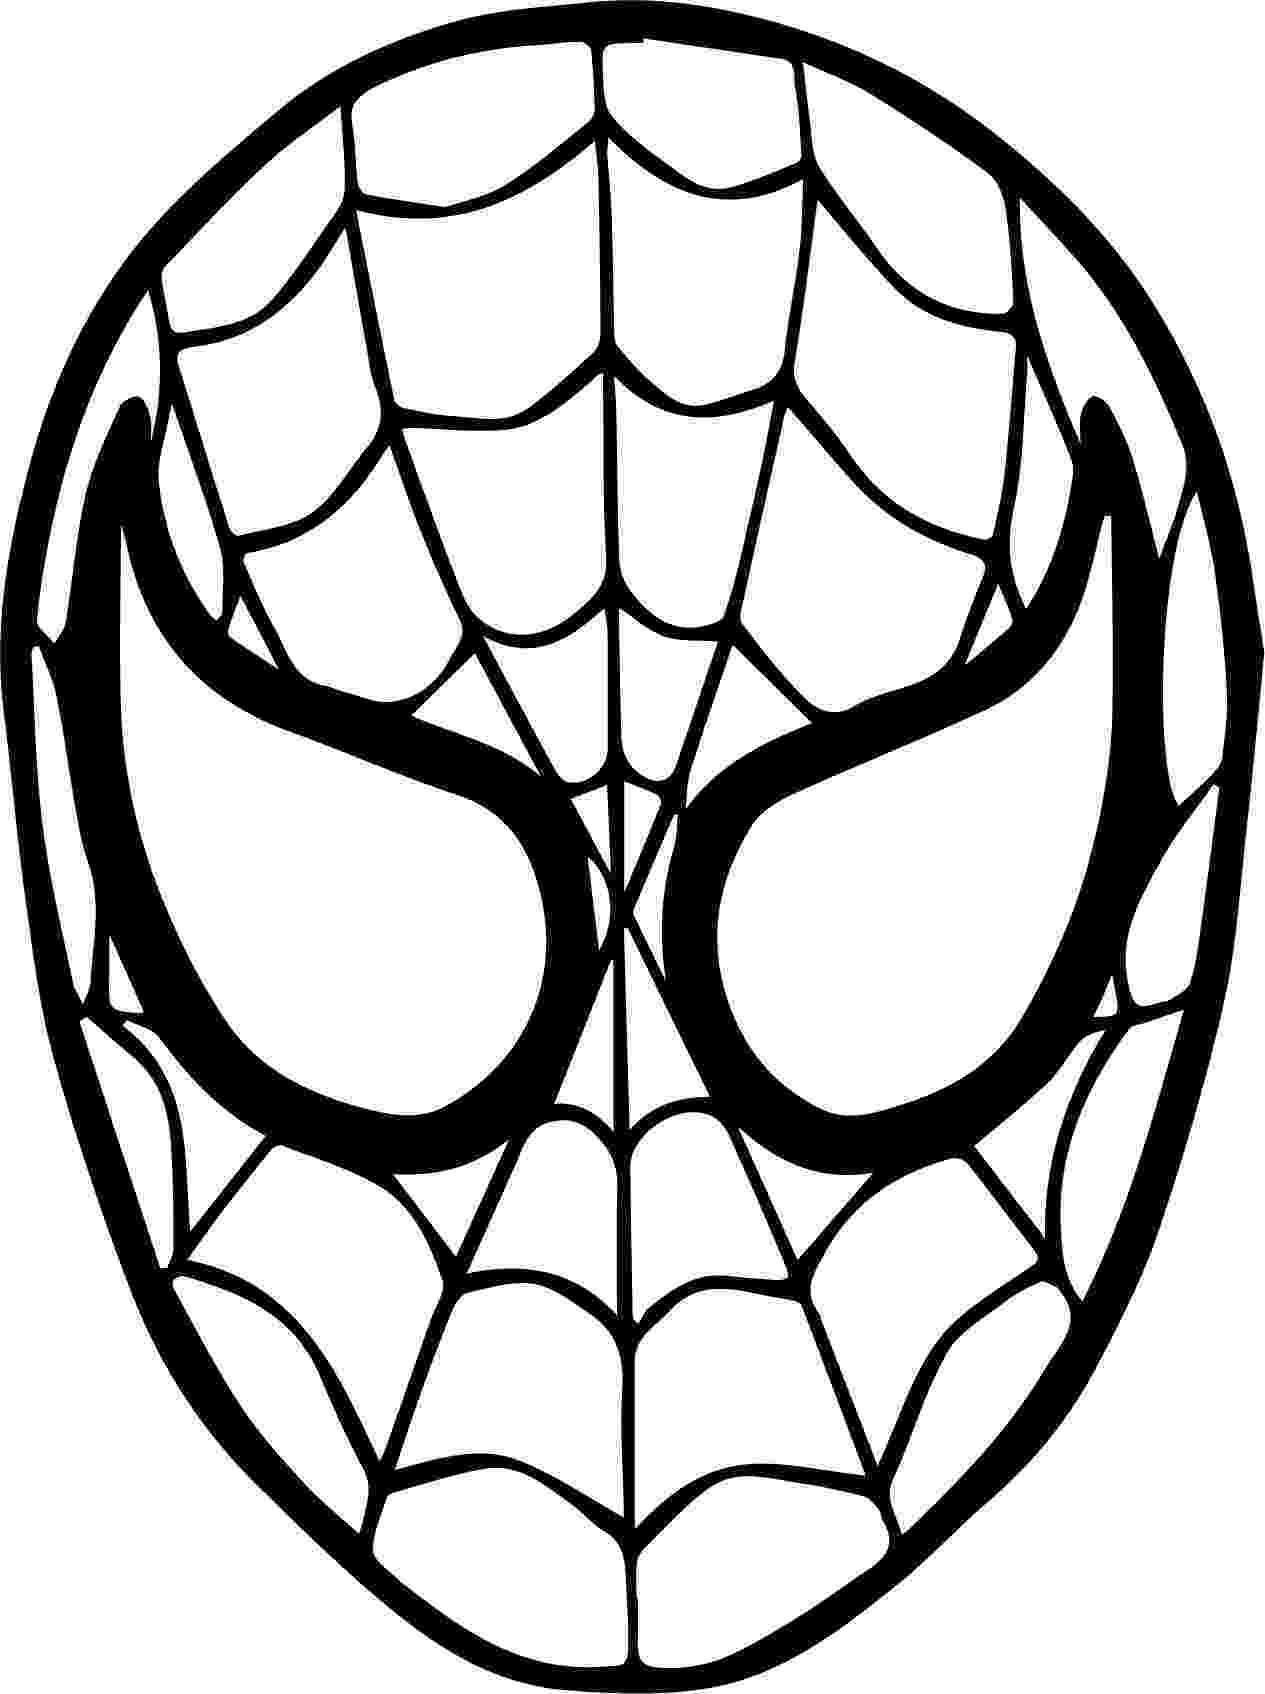 colouring templates spiderman pin by abby montelongo harris on bling it yo39self colouring spiderman templates